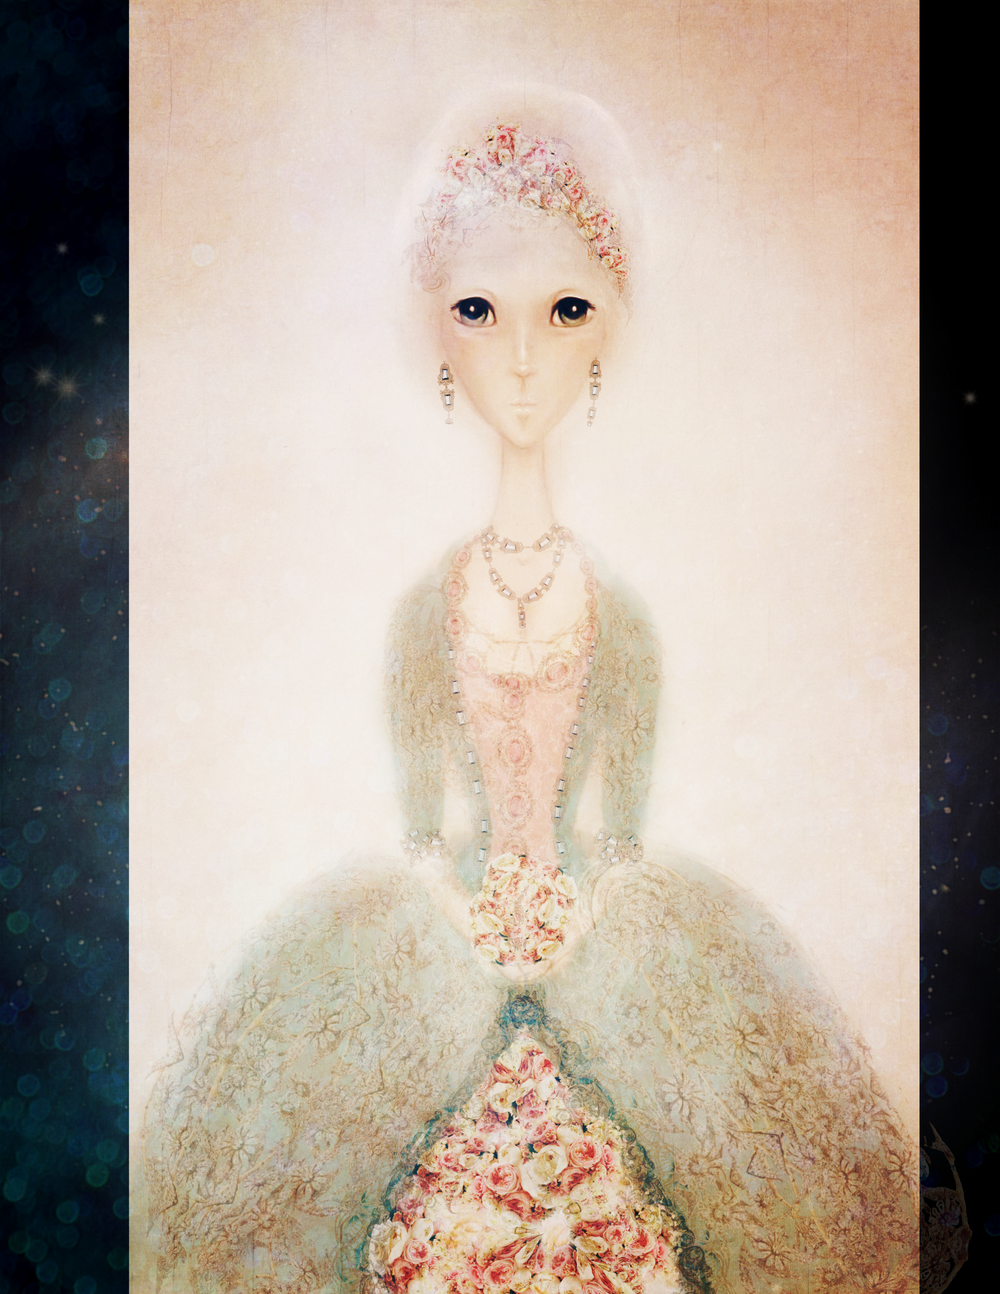 Anime Marie Antoinette illustration